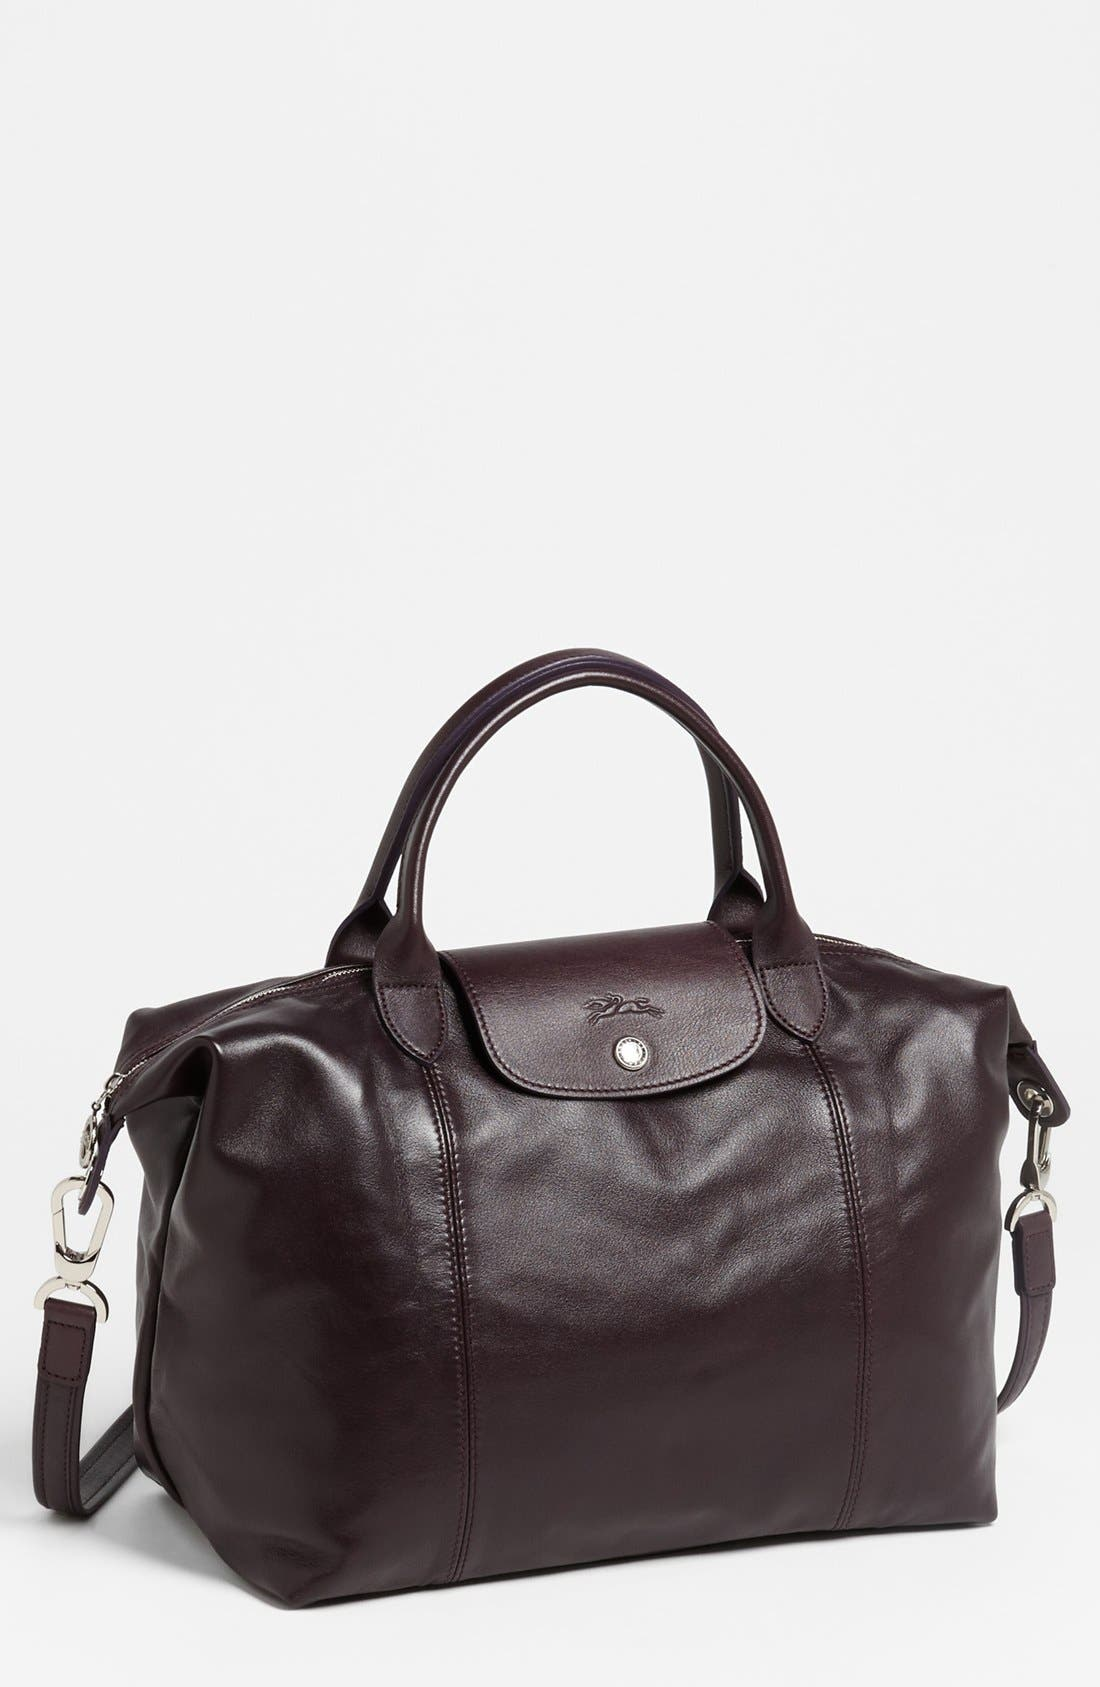 Medium 'Le Pliage Cuir' Leather Top Handle Tote,                             Main thumbnail 21, color,